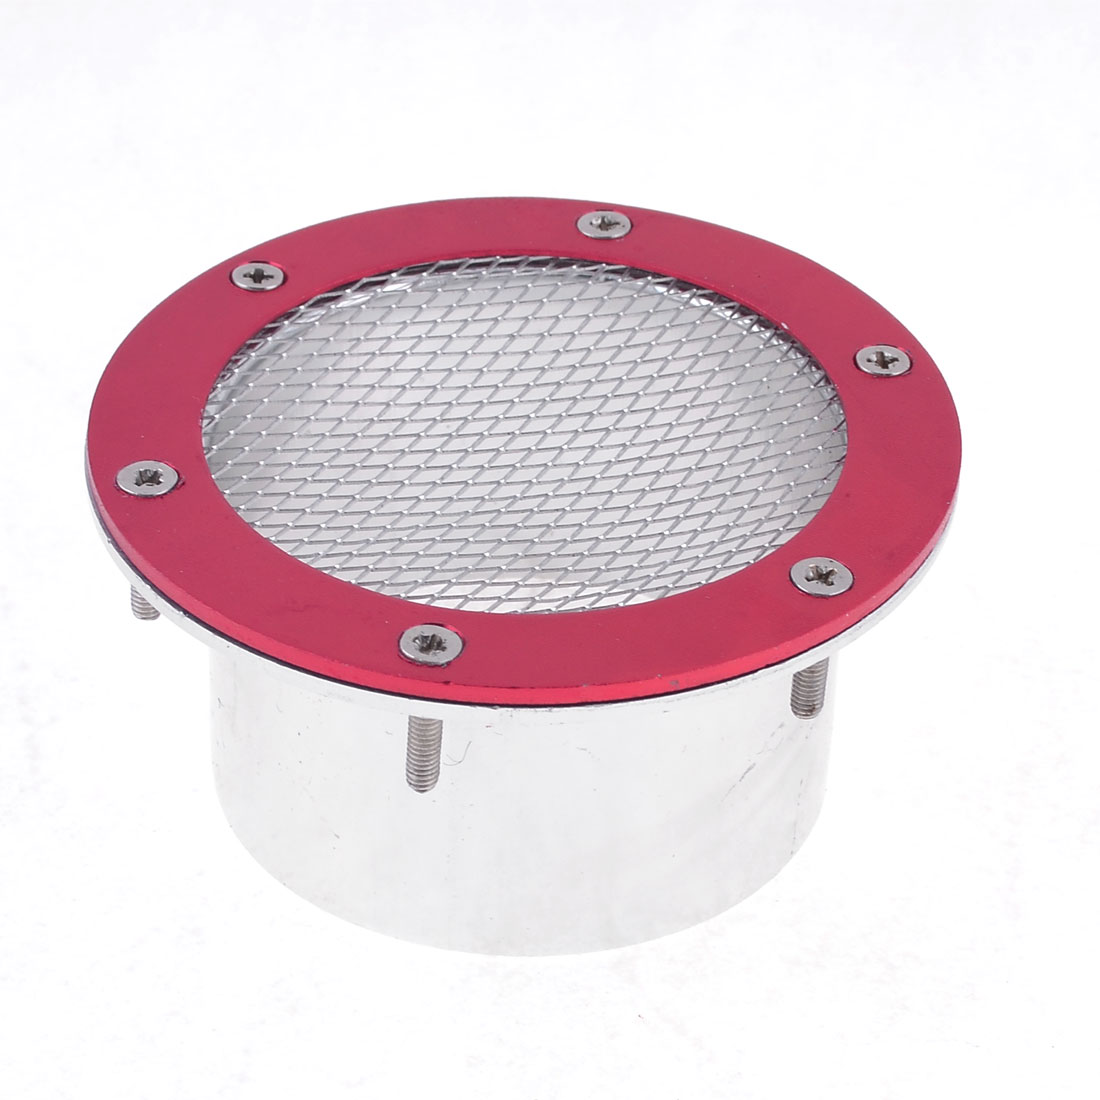 Silver Tone Red Round Air Vent Flow Fender Decorations for Vehicles Cars